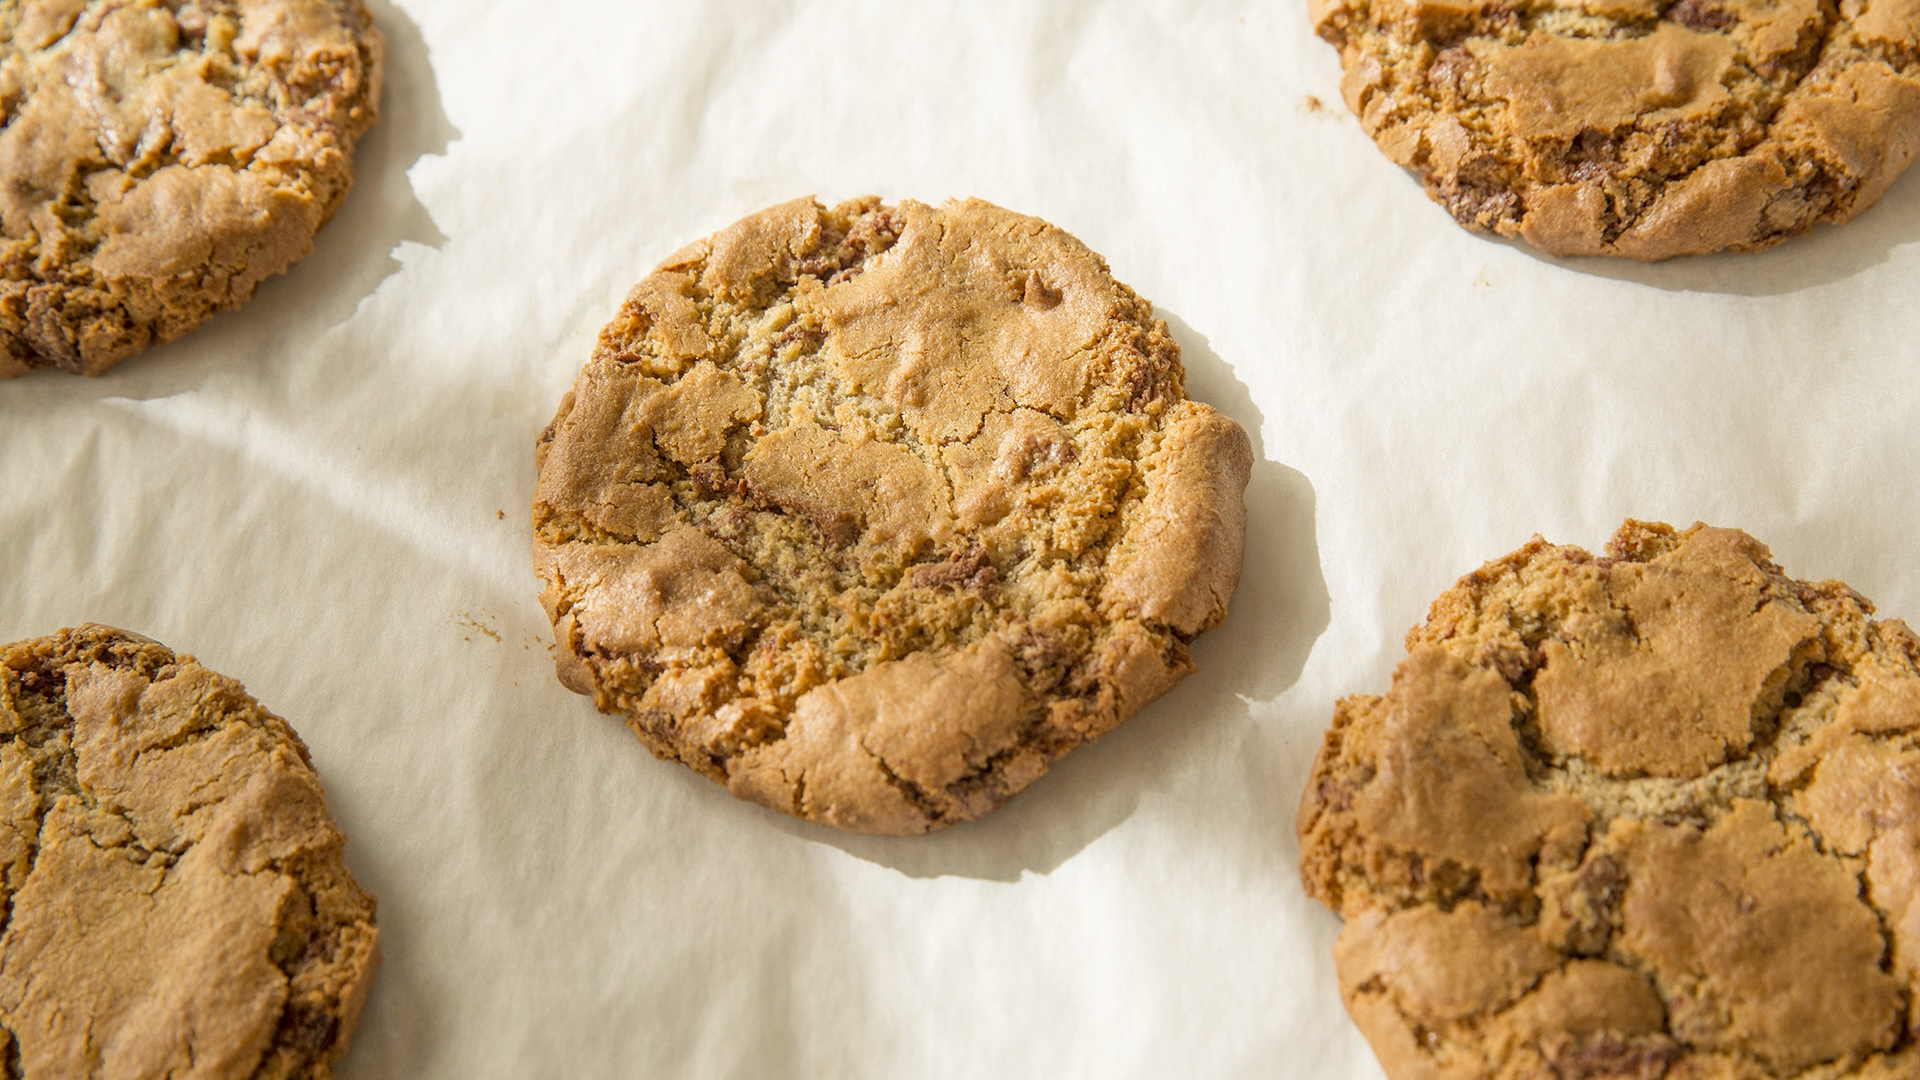 How to Make Amazingly Soft, Chewy, Gluten-Free Cookies